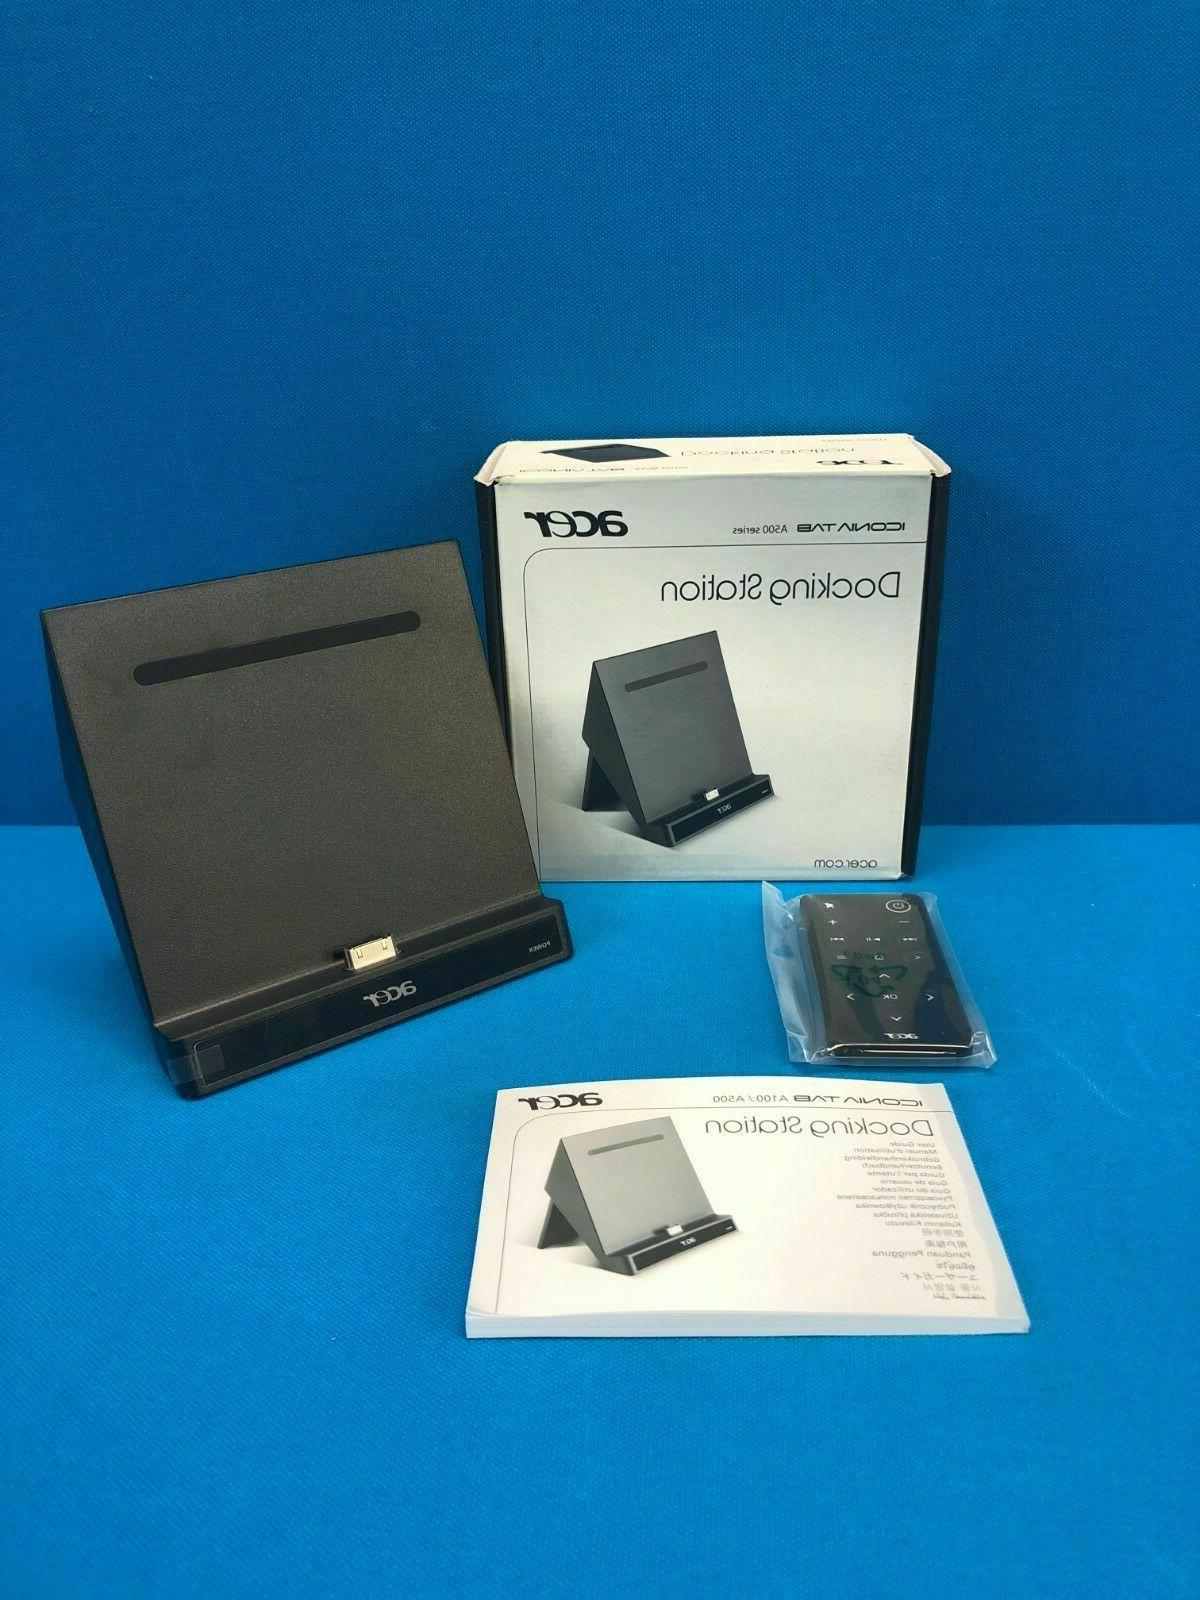 adt002 iconia tab a500 series docking station